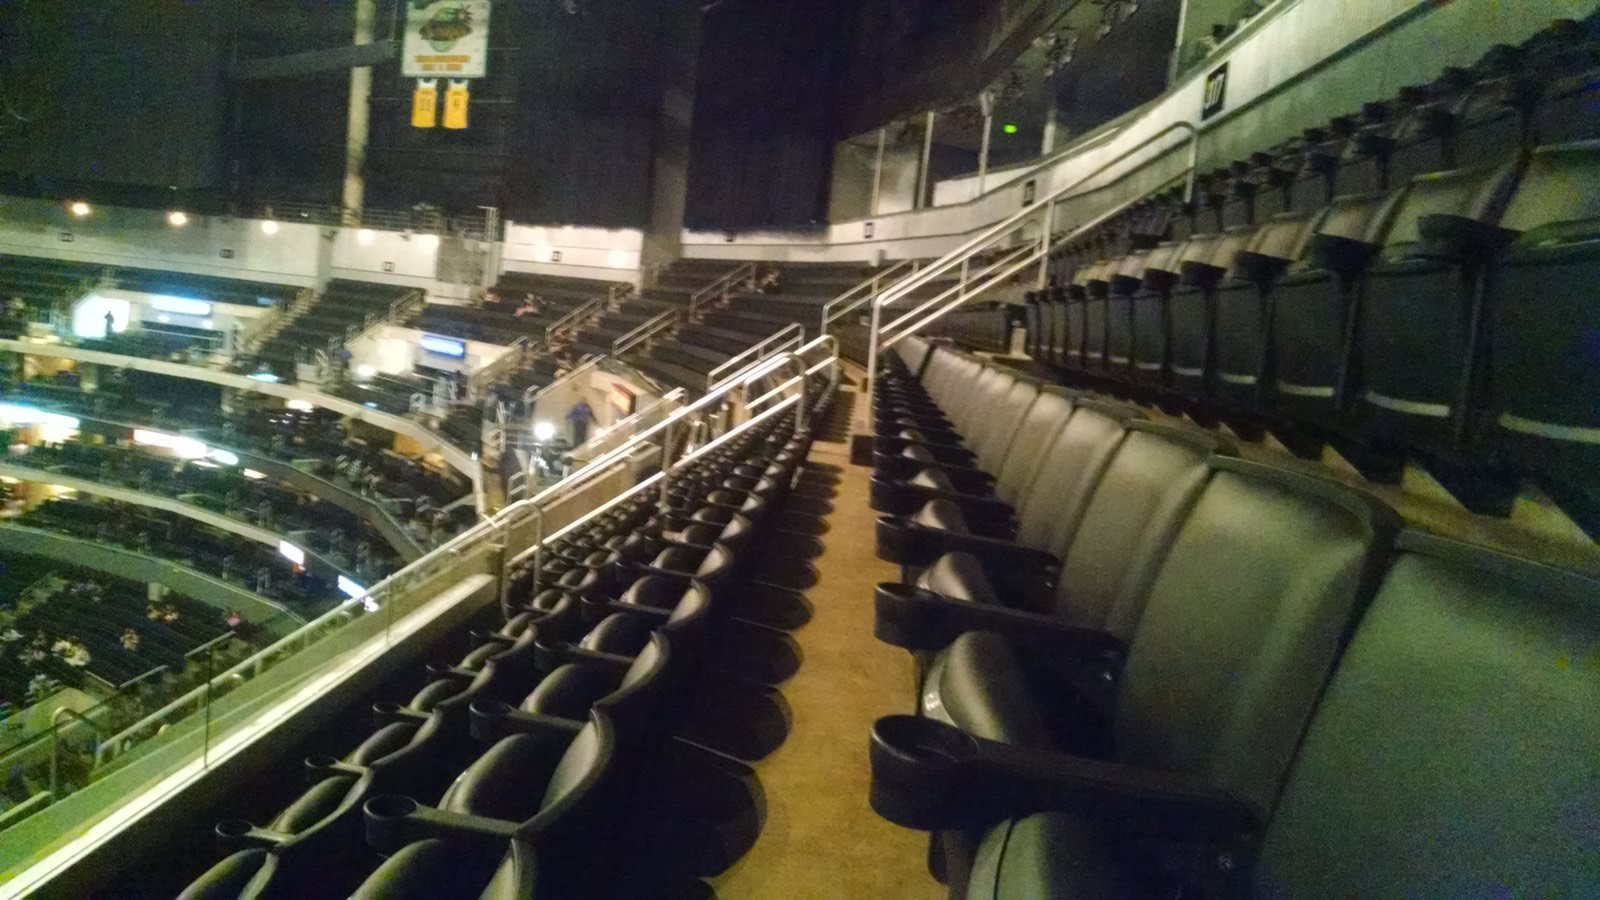 Section 318 at Staples Center for Concerts - RateYourSeats.com